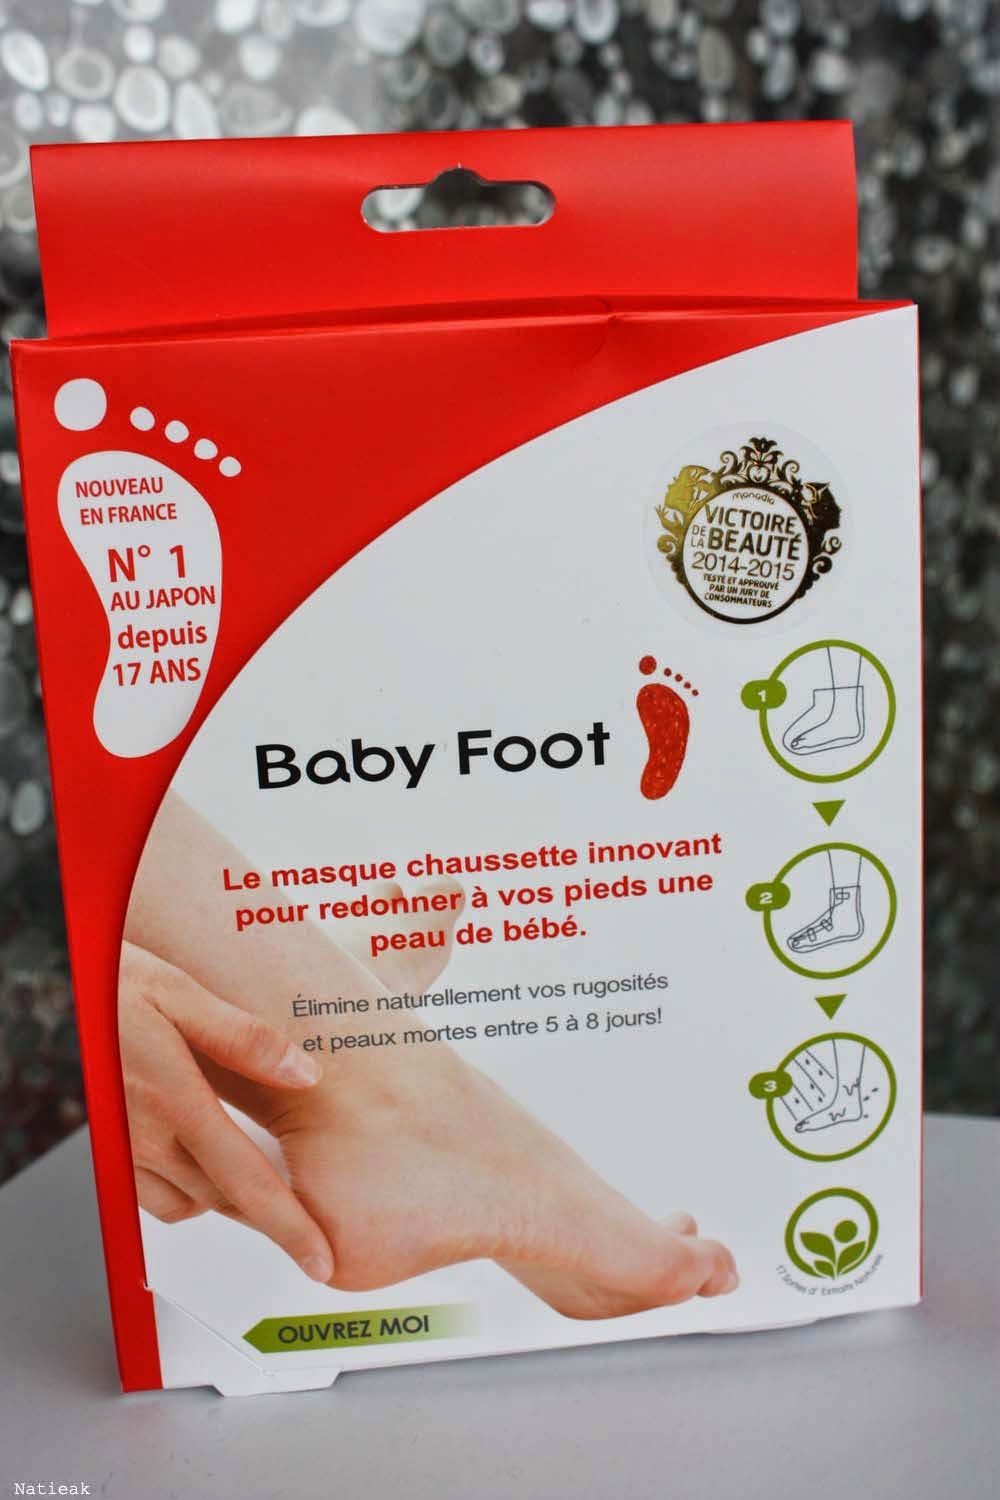 baby foot le masque qui te fait des pieds de b b sauf quand tu es un cas d sesp r le. Black Bedroom Furniture Sets. Home Design Ideas